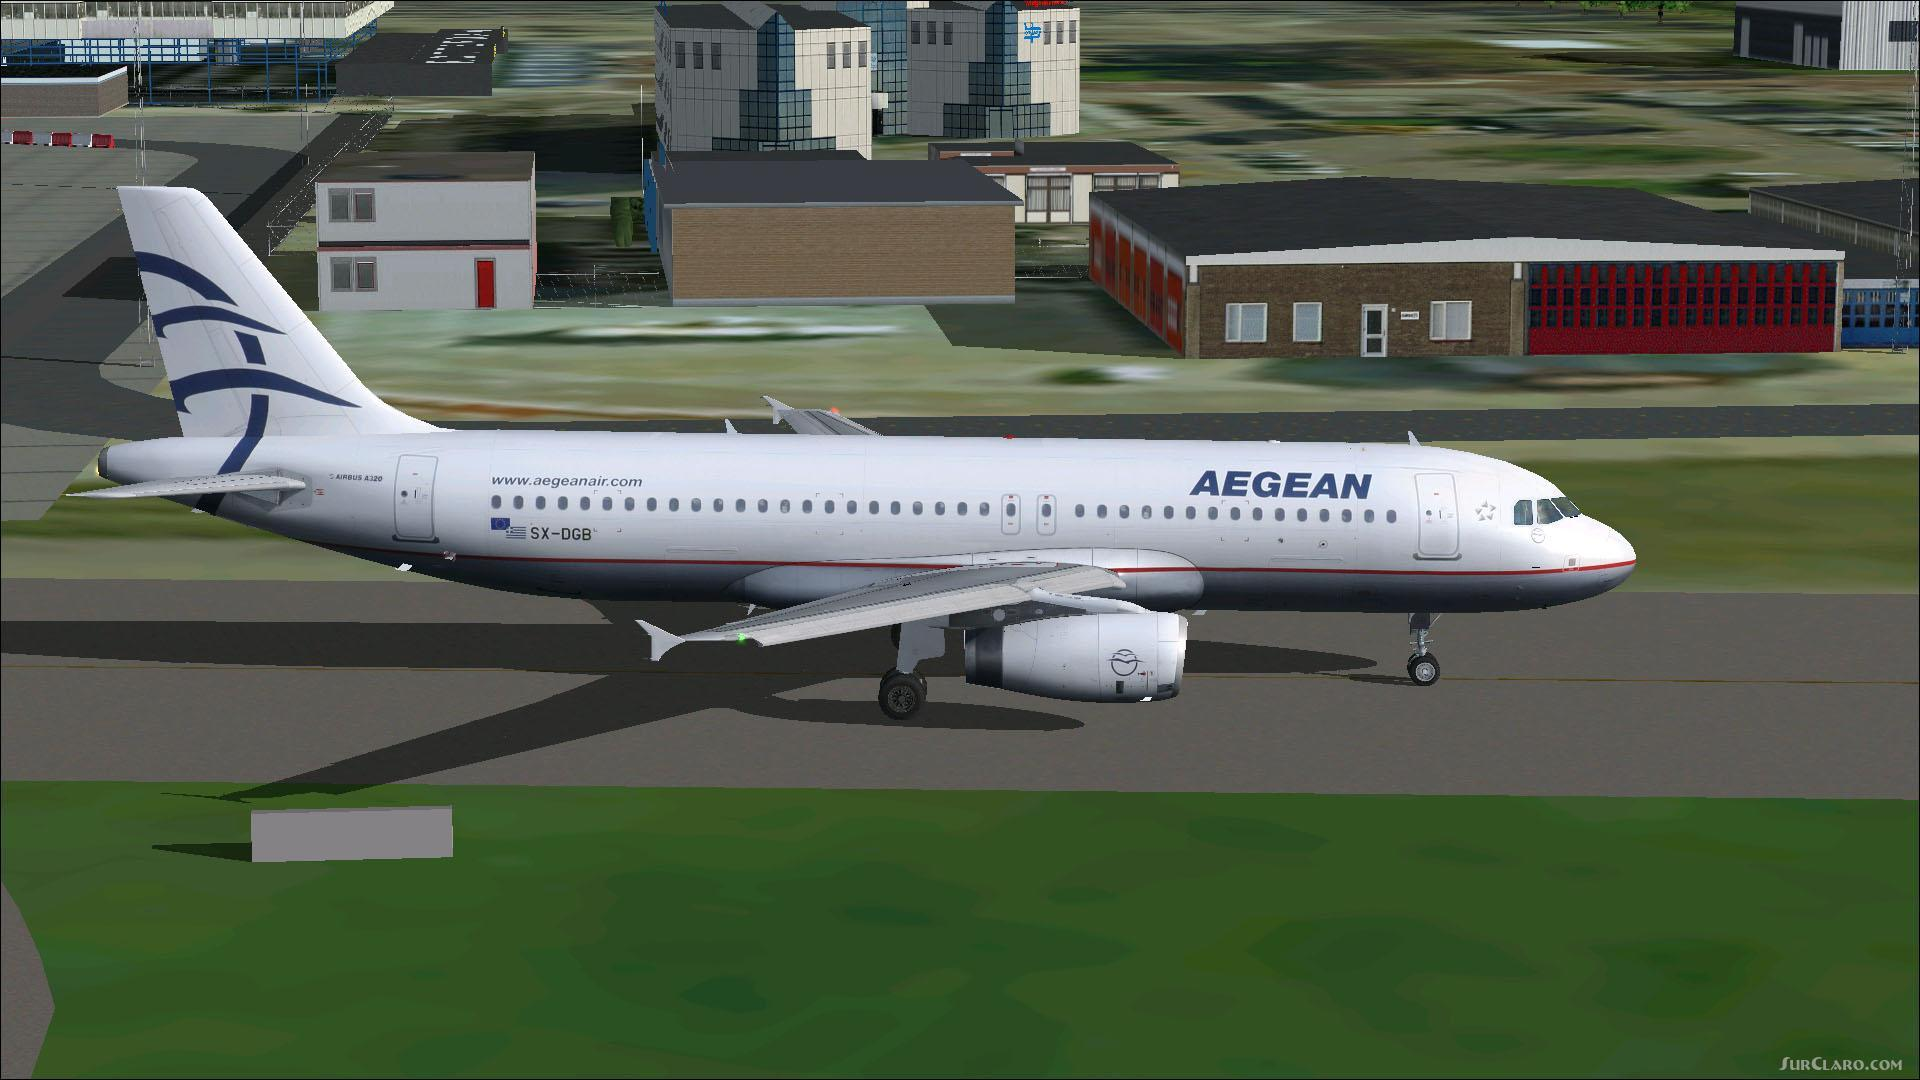 FSX FS2004 Project Airbus A320-232 Aegean Airlines Aircraft